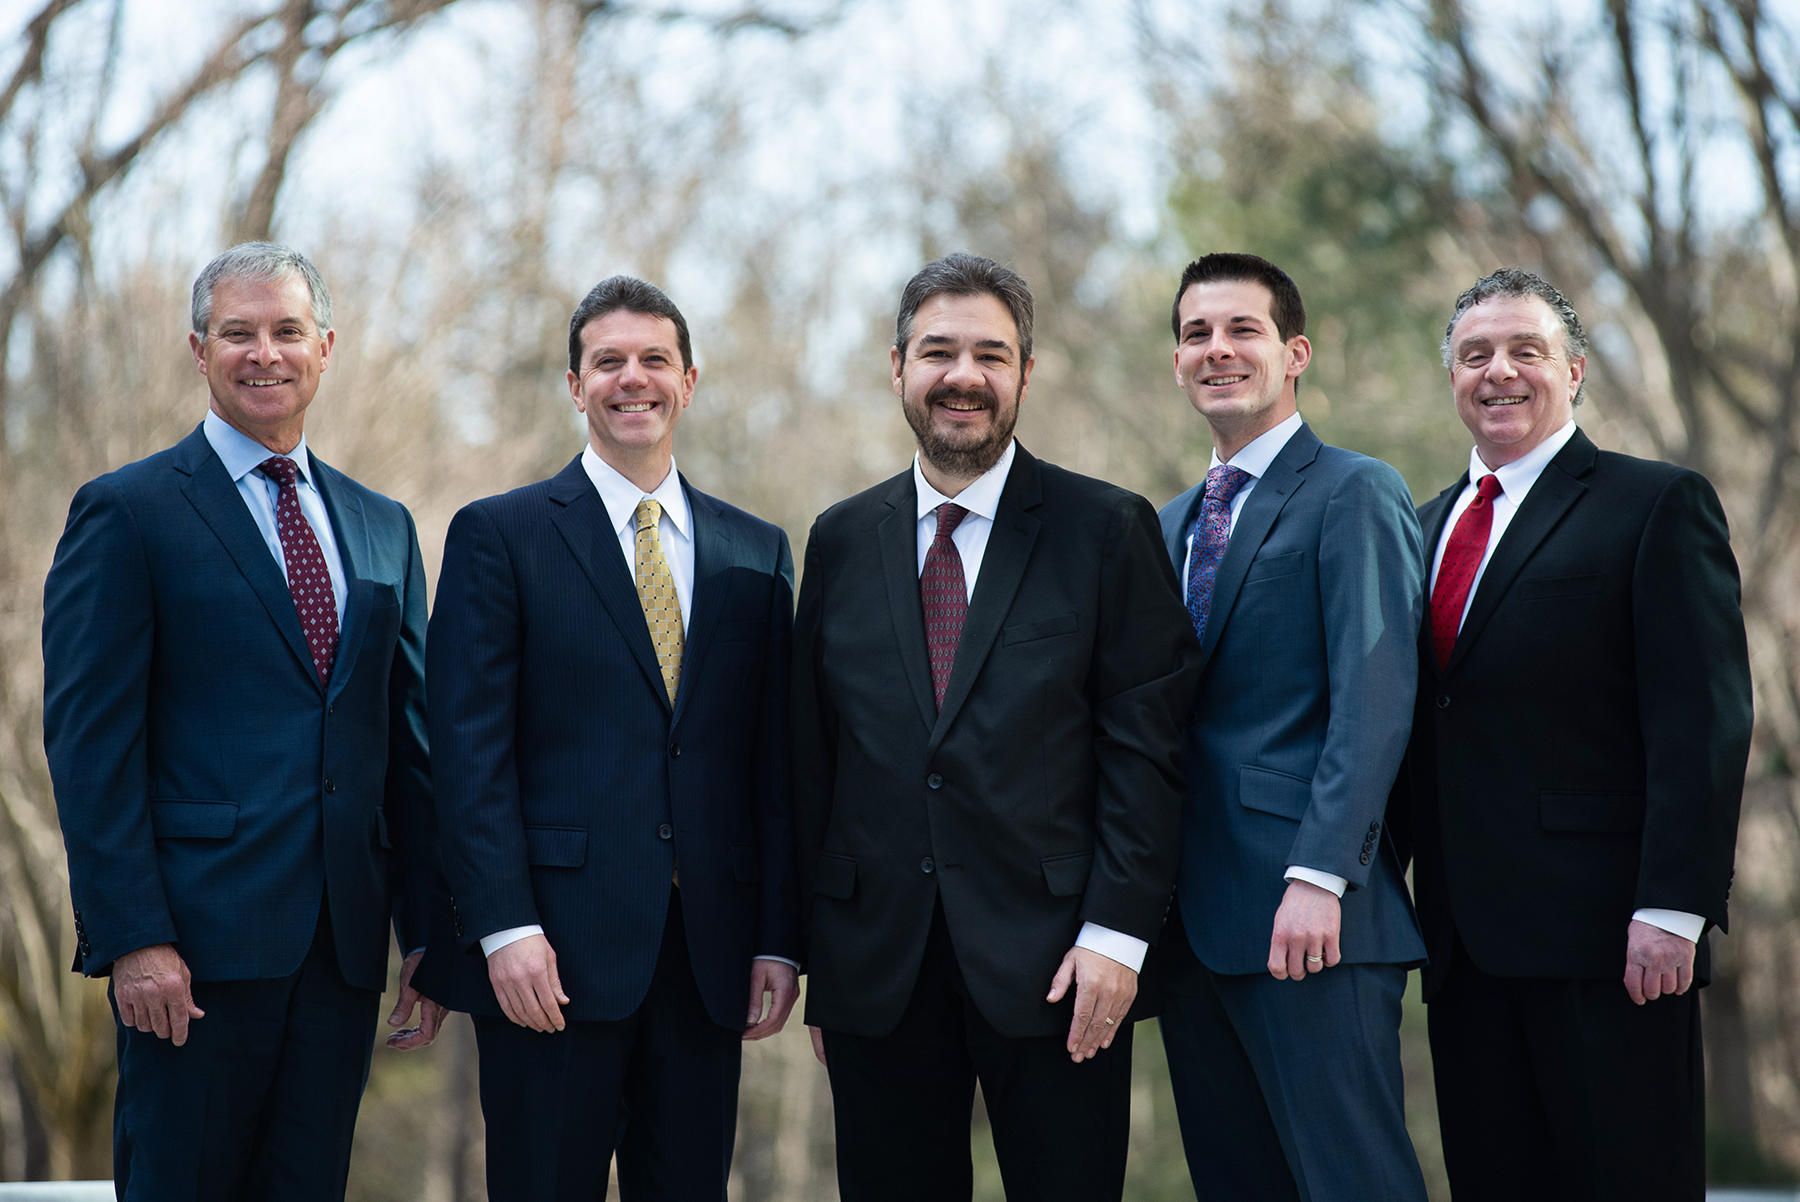 The Beacon Group | Blue Bell, PA | Morgan Stanley Wealth